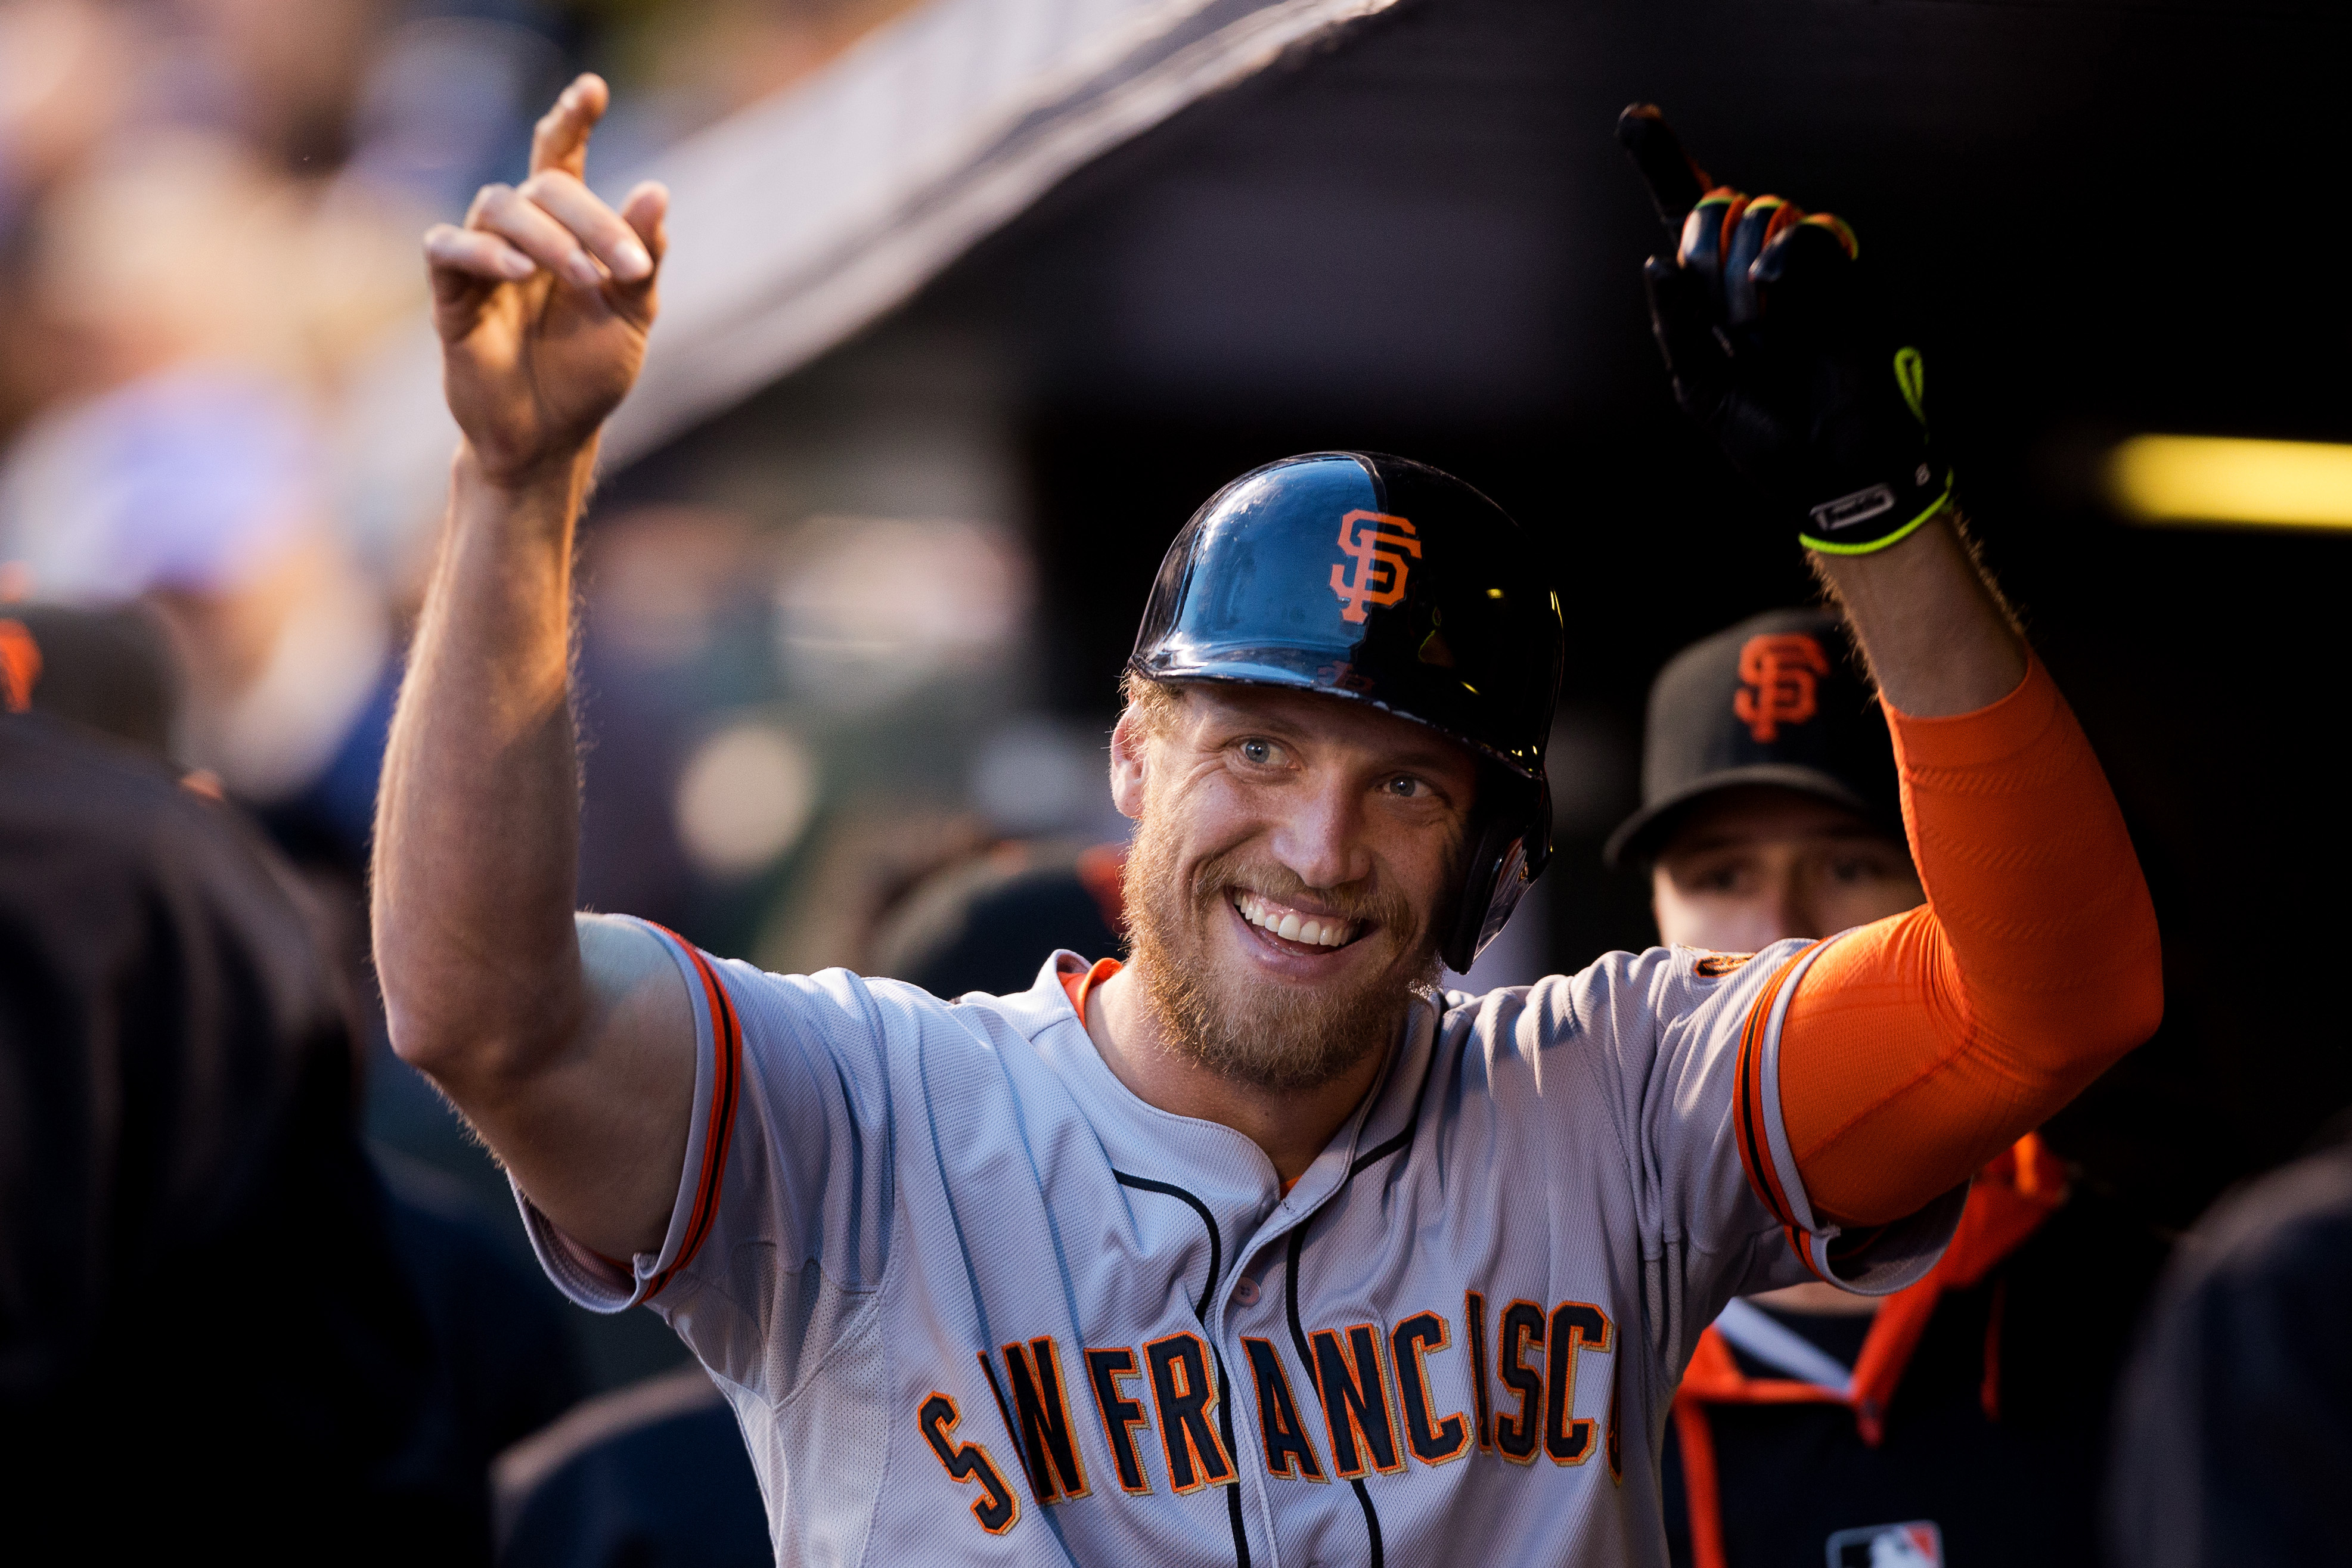 Hunter Pence during the fourth inning against the Colorado Rockies at Coors Field on May 21, 2014 in Denver, CO.